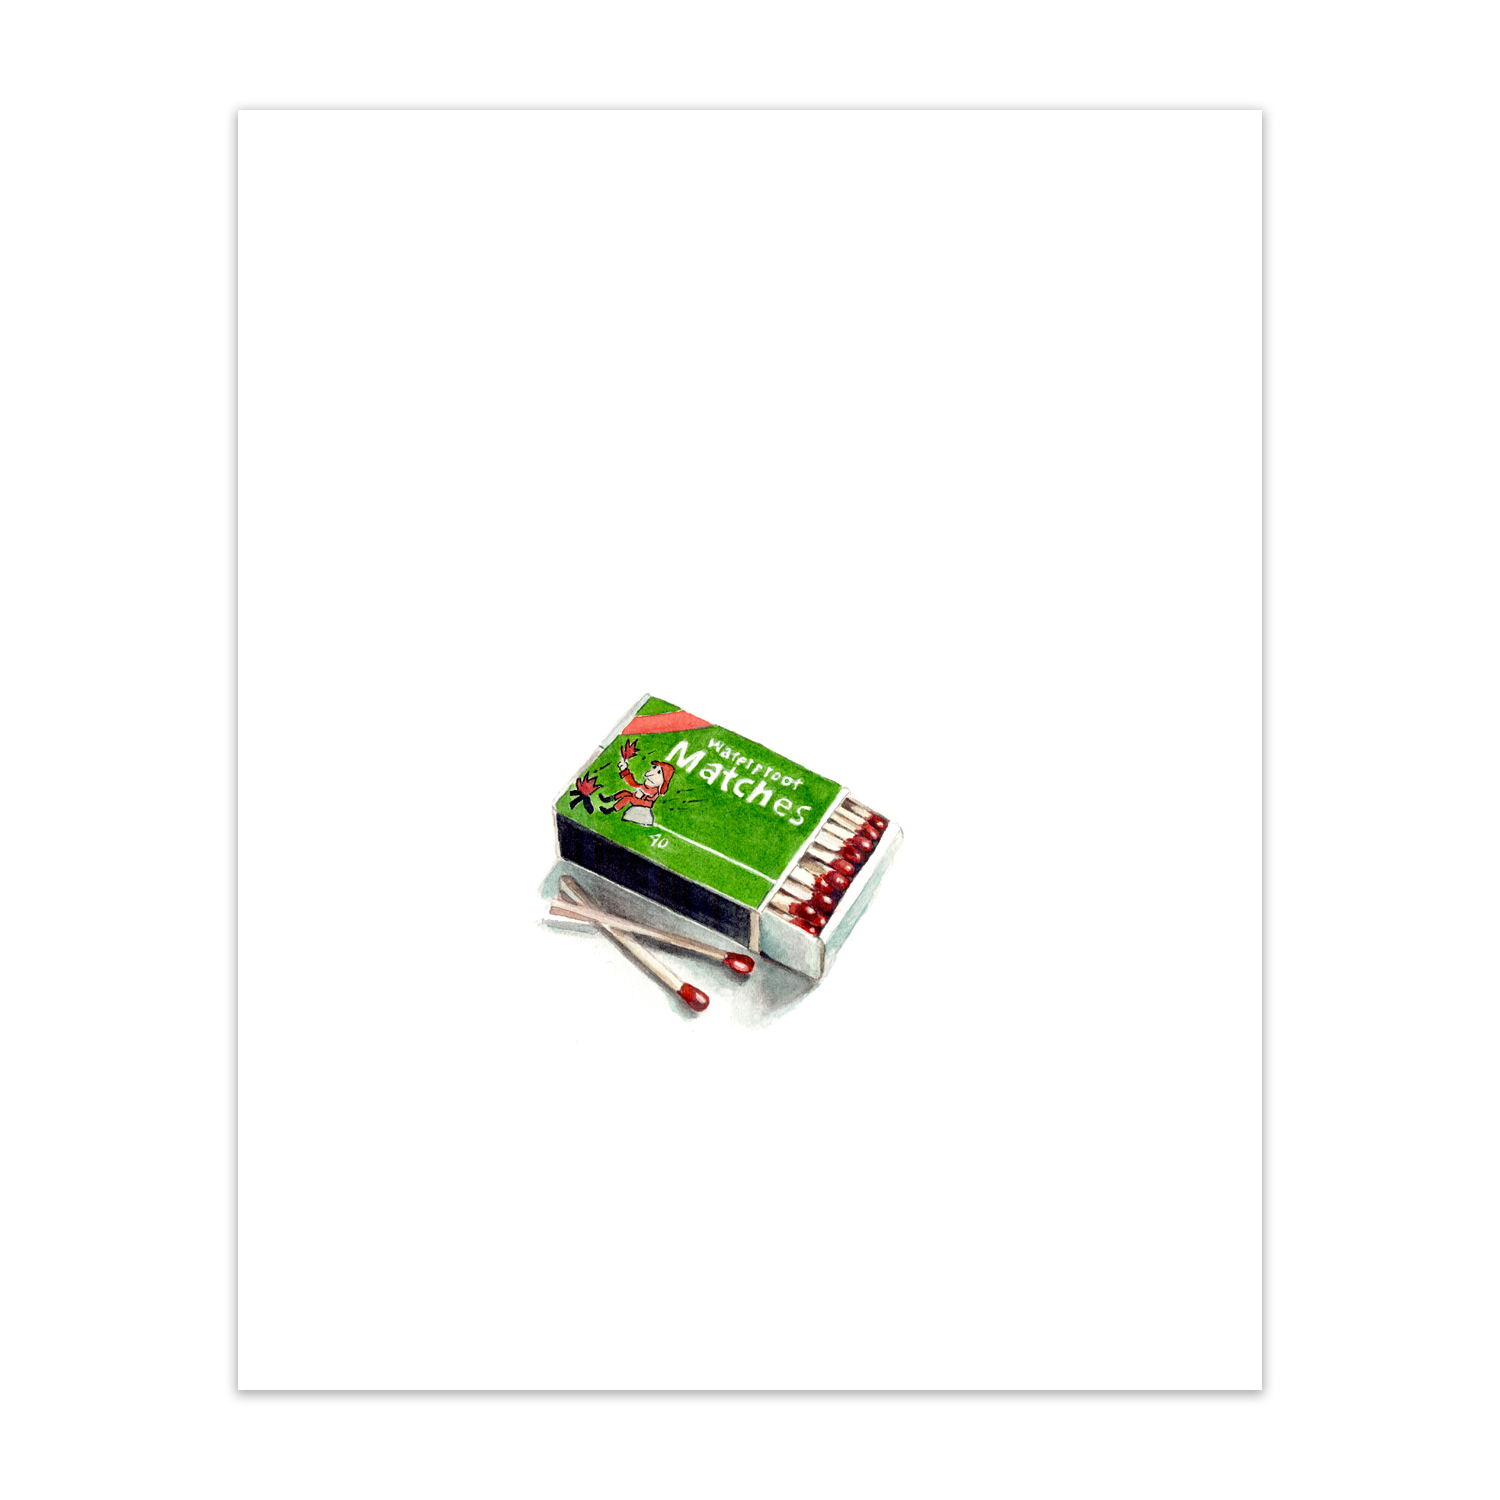 """Waterproof Matches <br> <span style= """"font-size: 0.75em;""""> 🔴  SOLD </span>"""